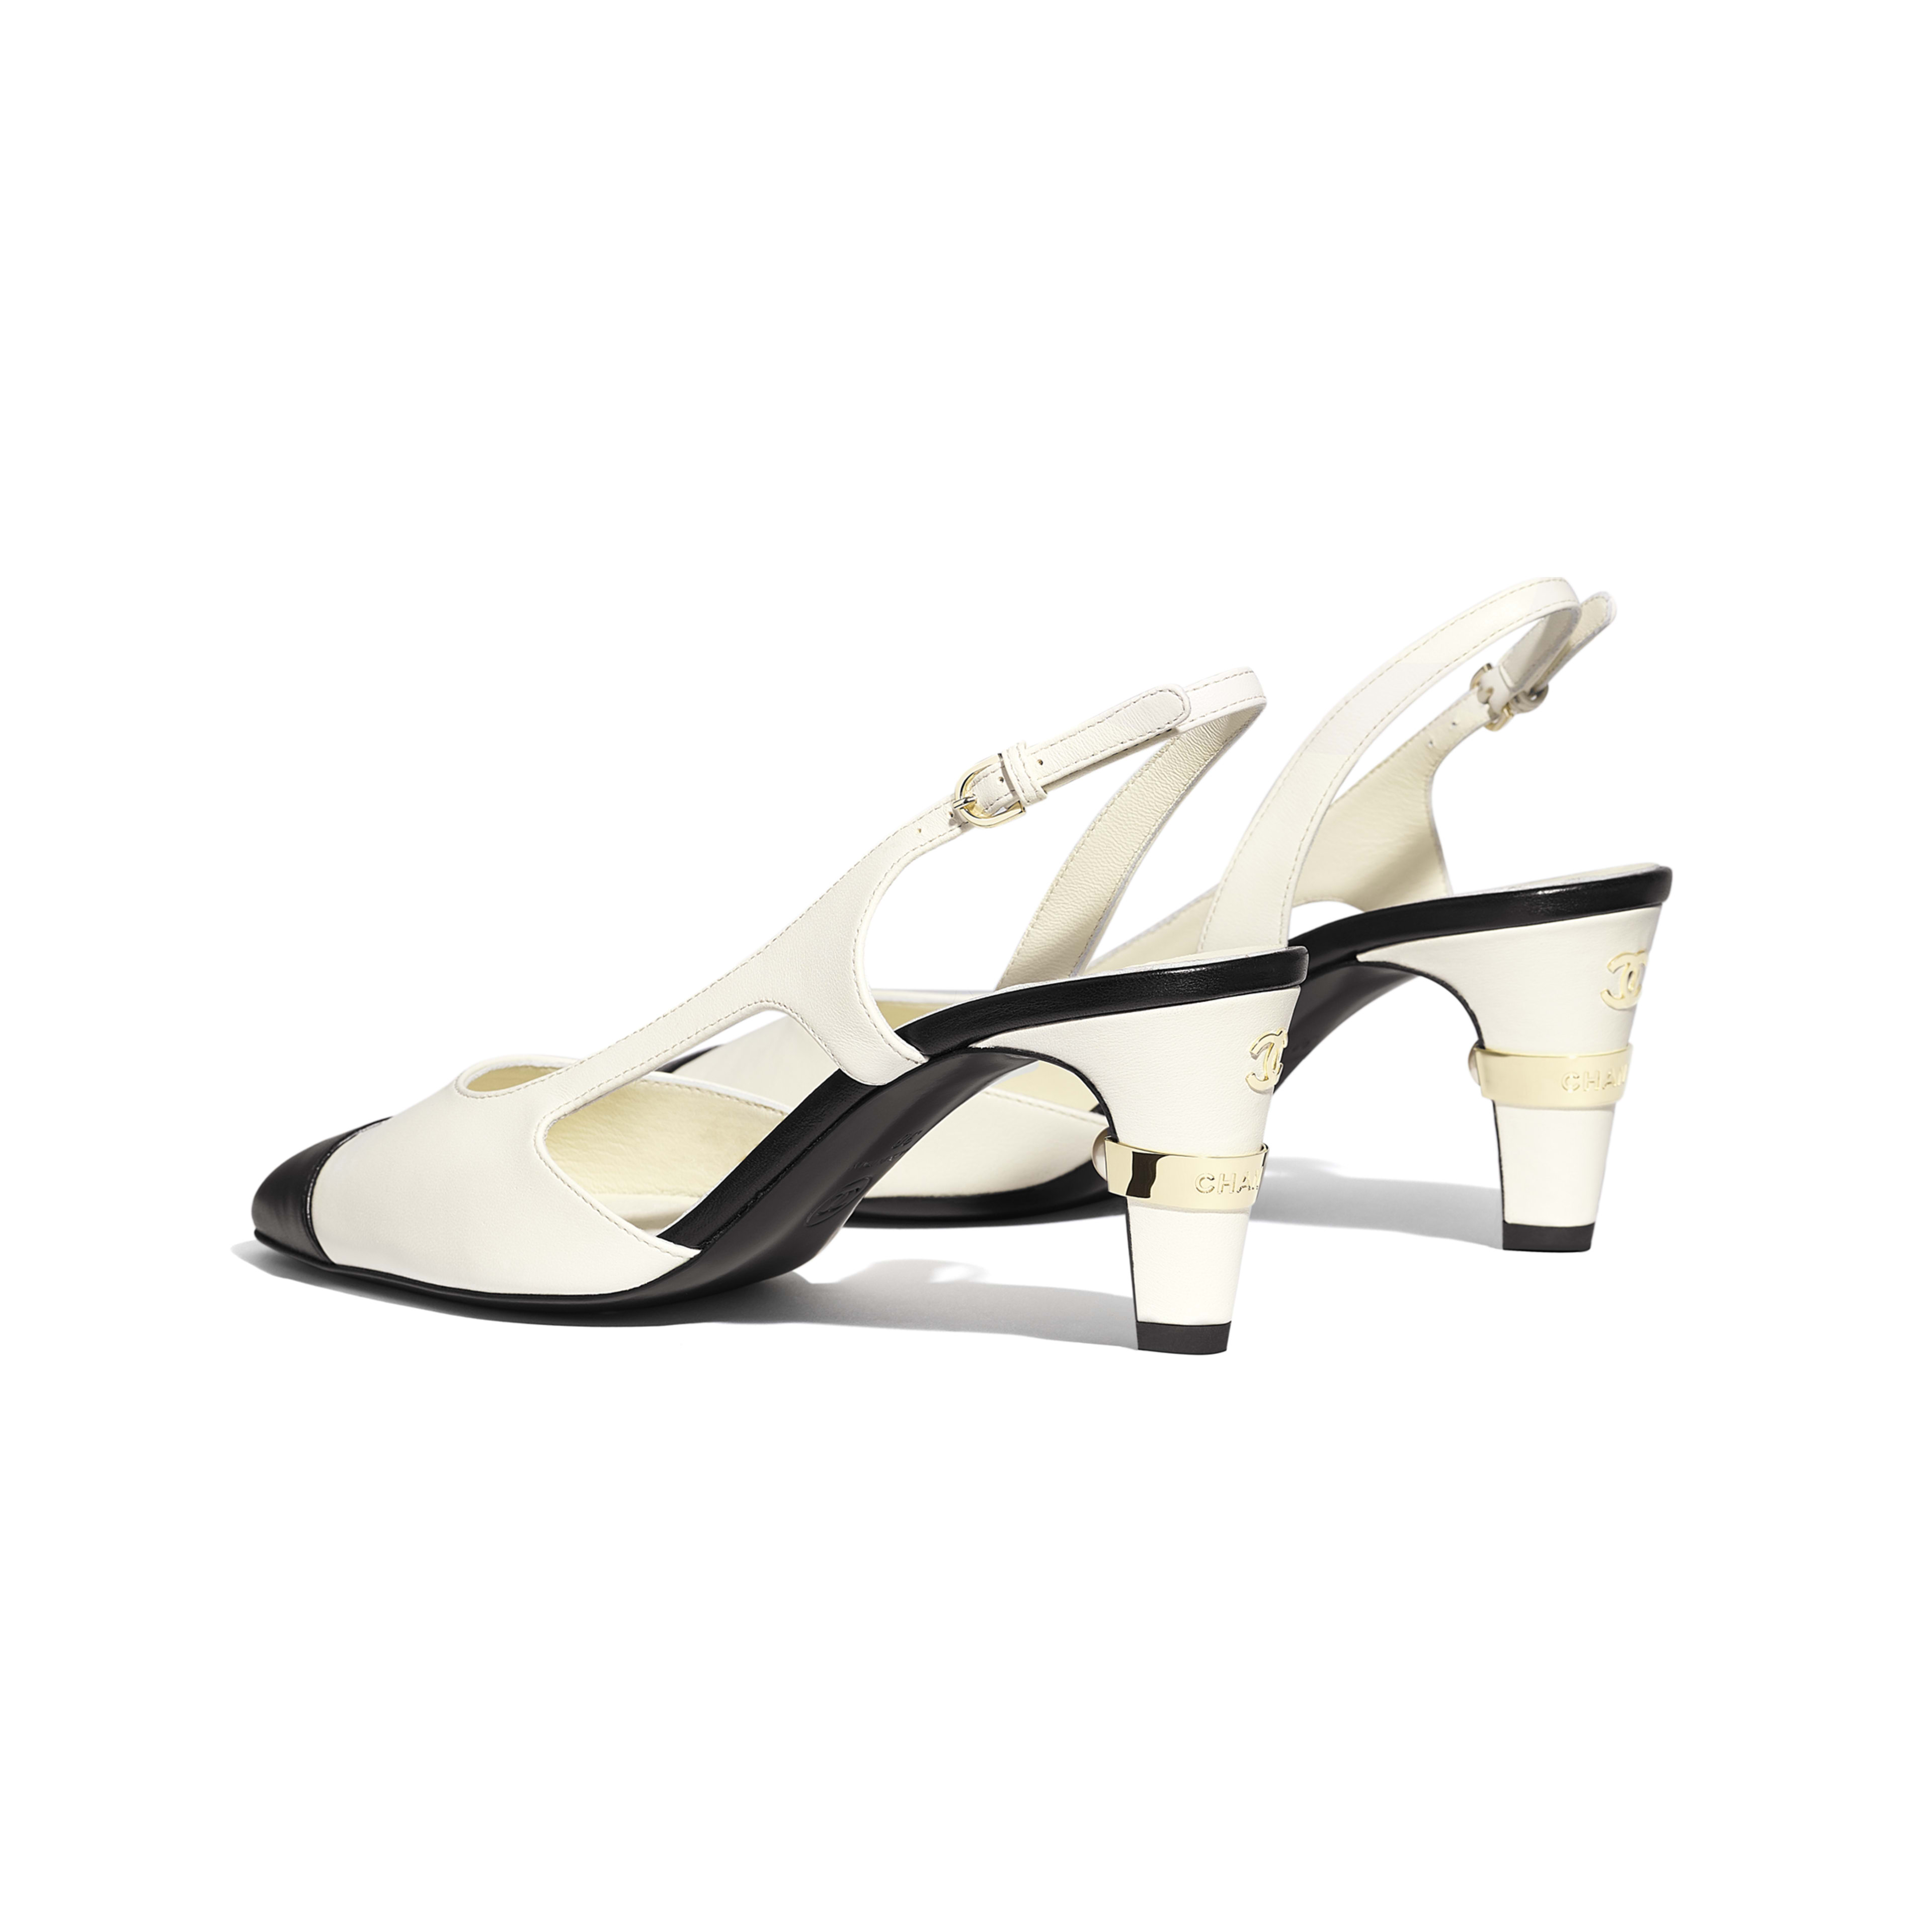 Sling-Back - Ivory & Black - Lambskin - Other view - see full sized version